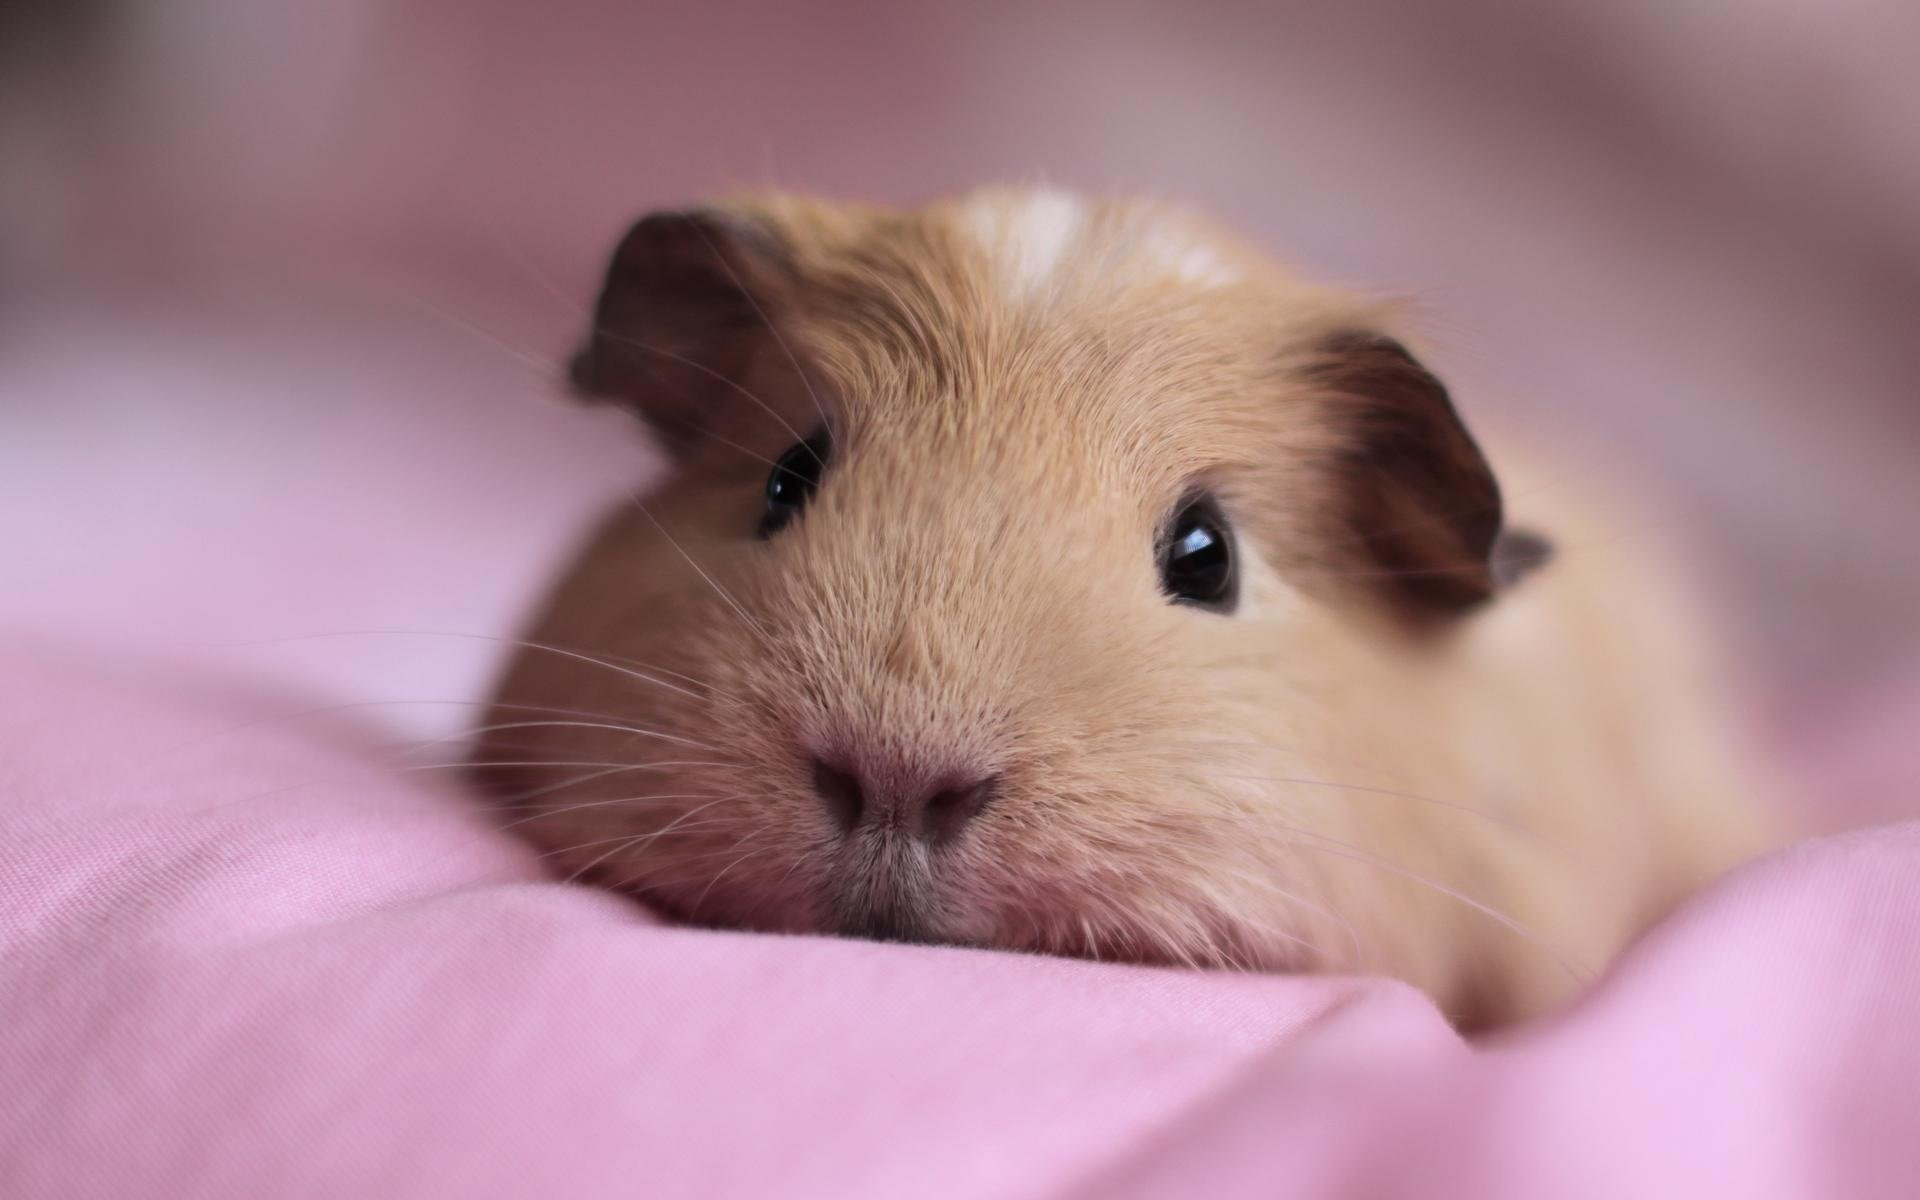 Awesome Guinea Pig free wallpaper ID:270952 for hd 1920x1200 desktop